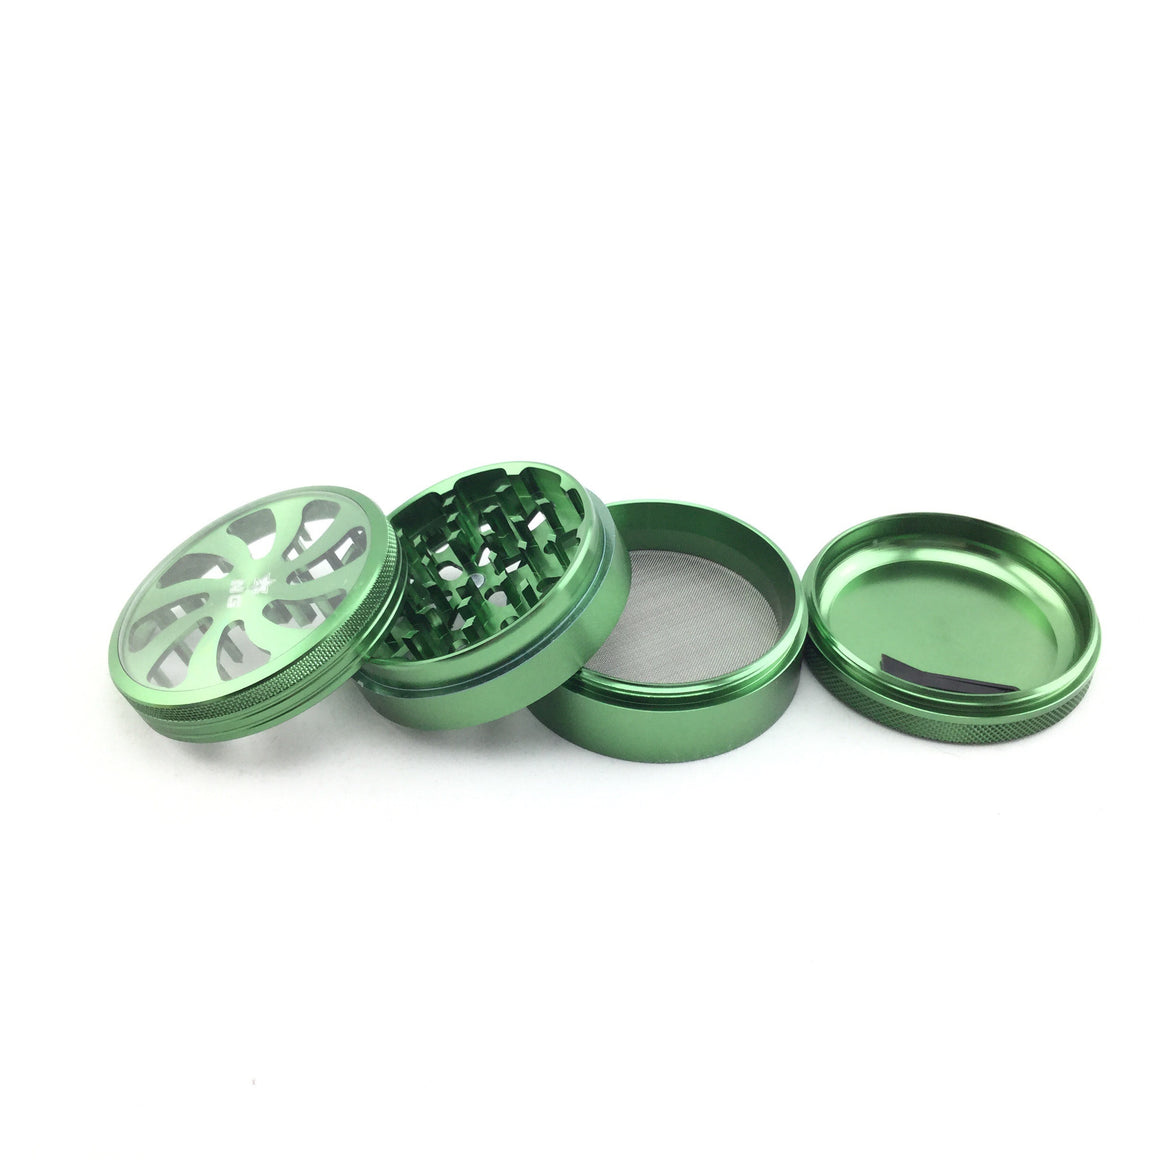 "NG Grinder 2.5"" 4pc Slot Top"